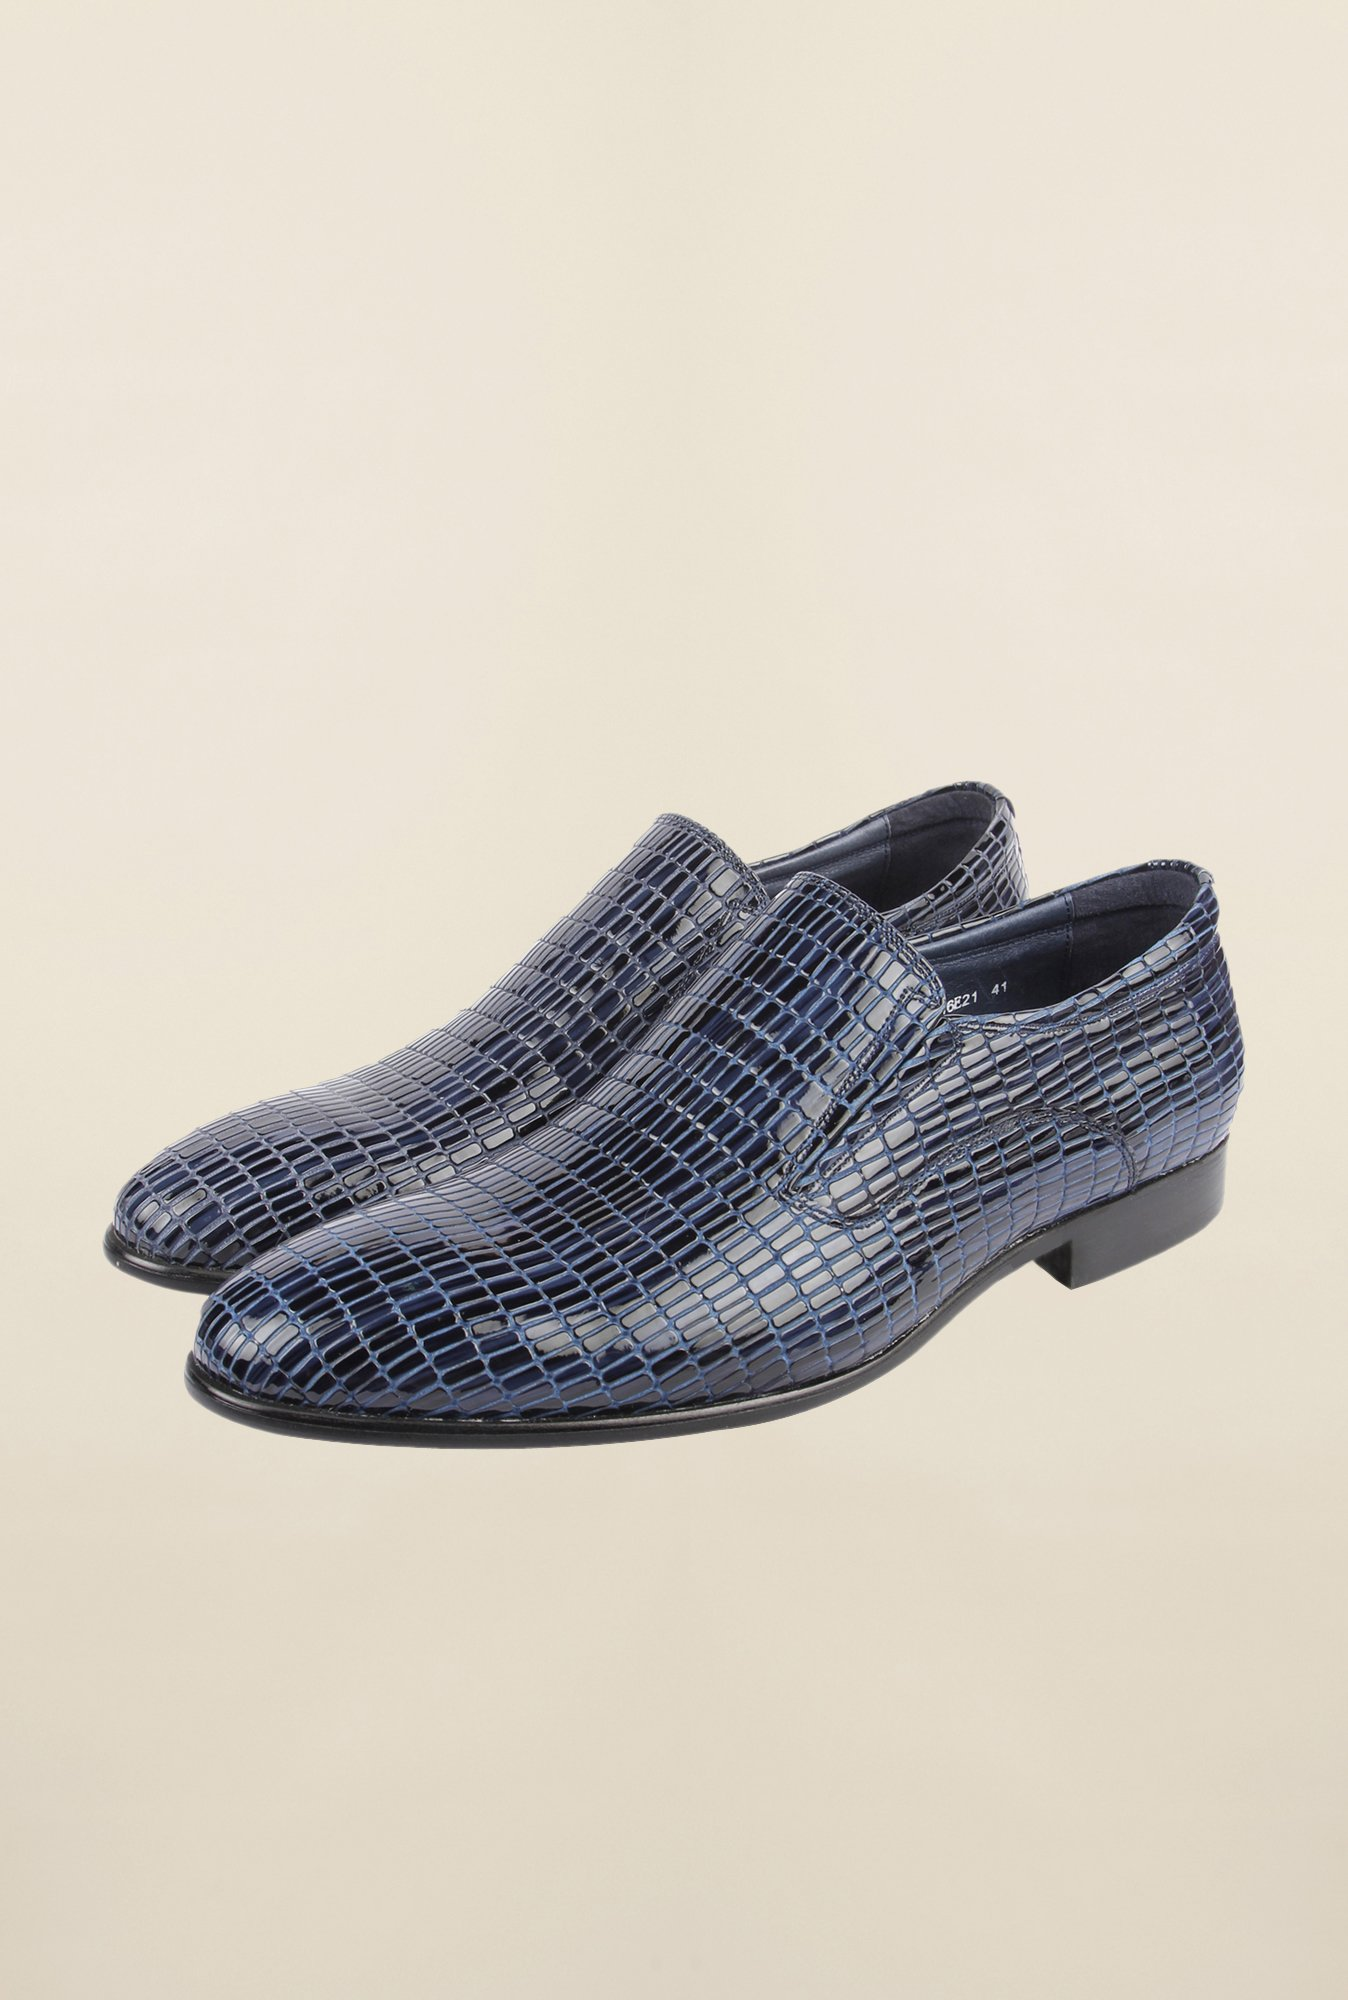 Cobblerz Blue Leather Slip-On Shoes